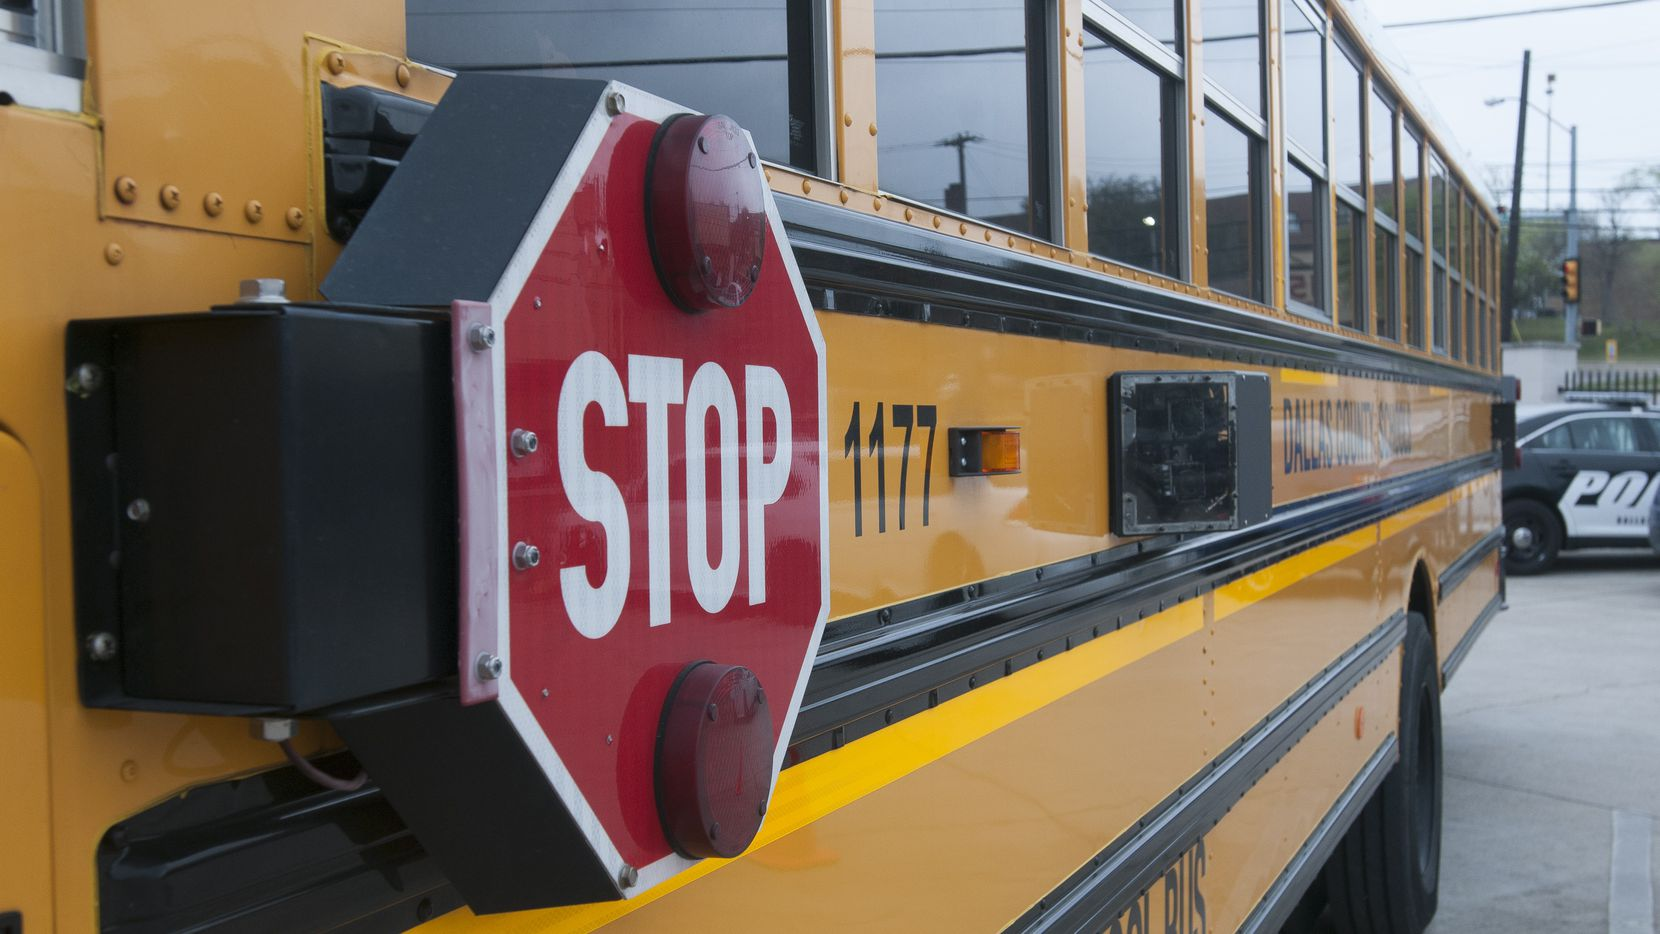 A school bus is pictured in this file photo. Smith Elementary School in Collin County will close for one week due to COVID-19 cases.